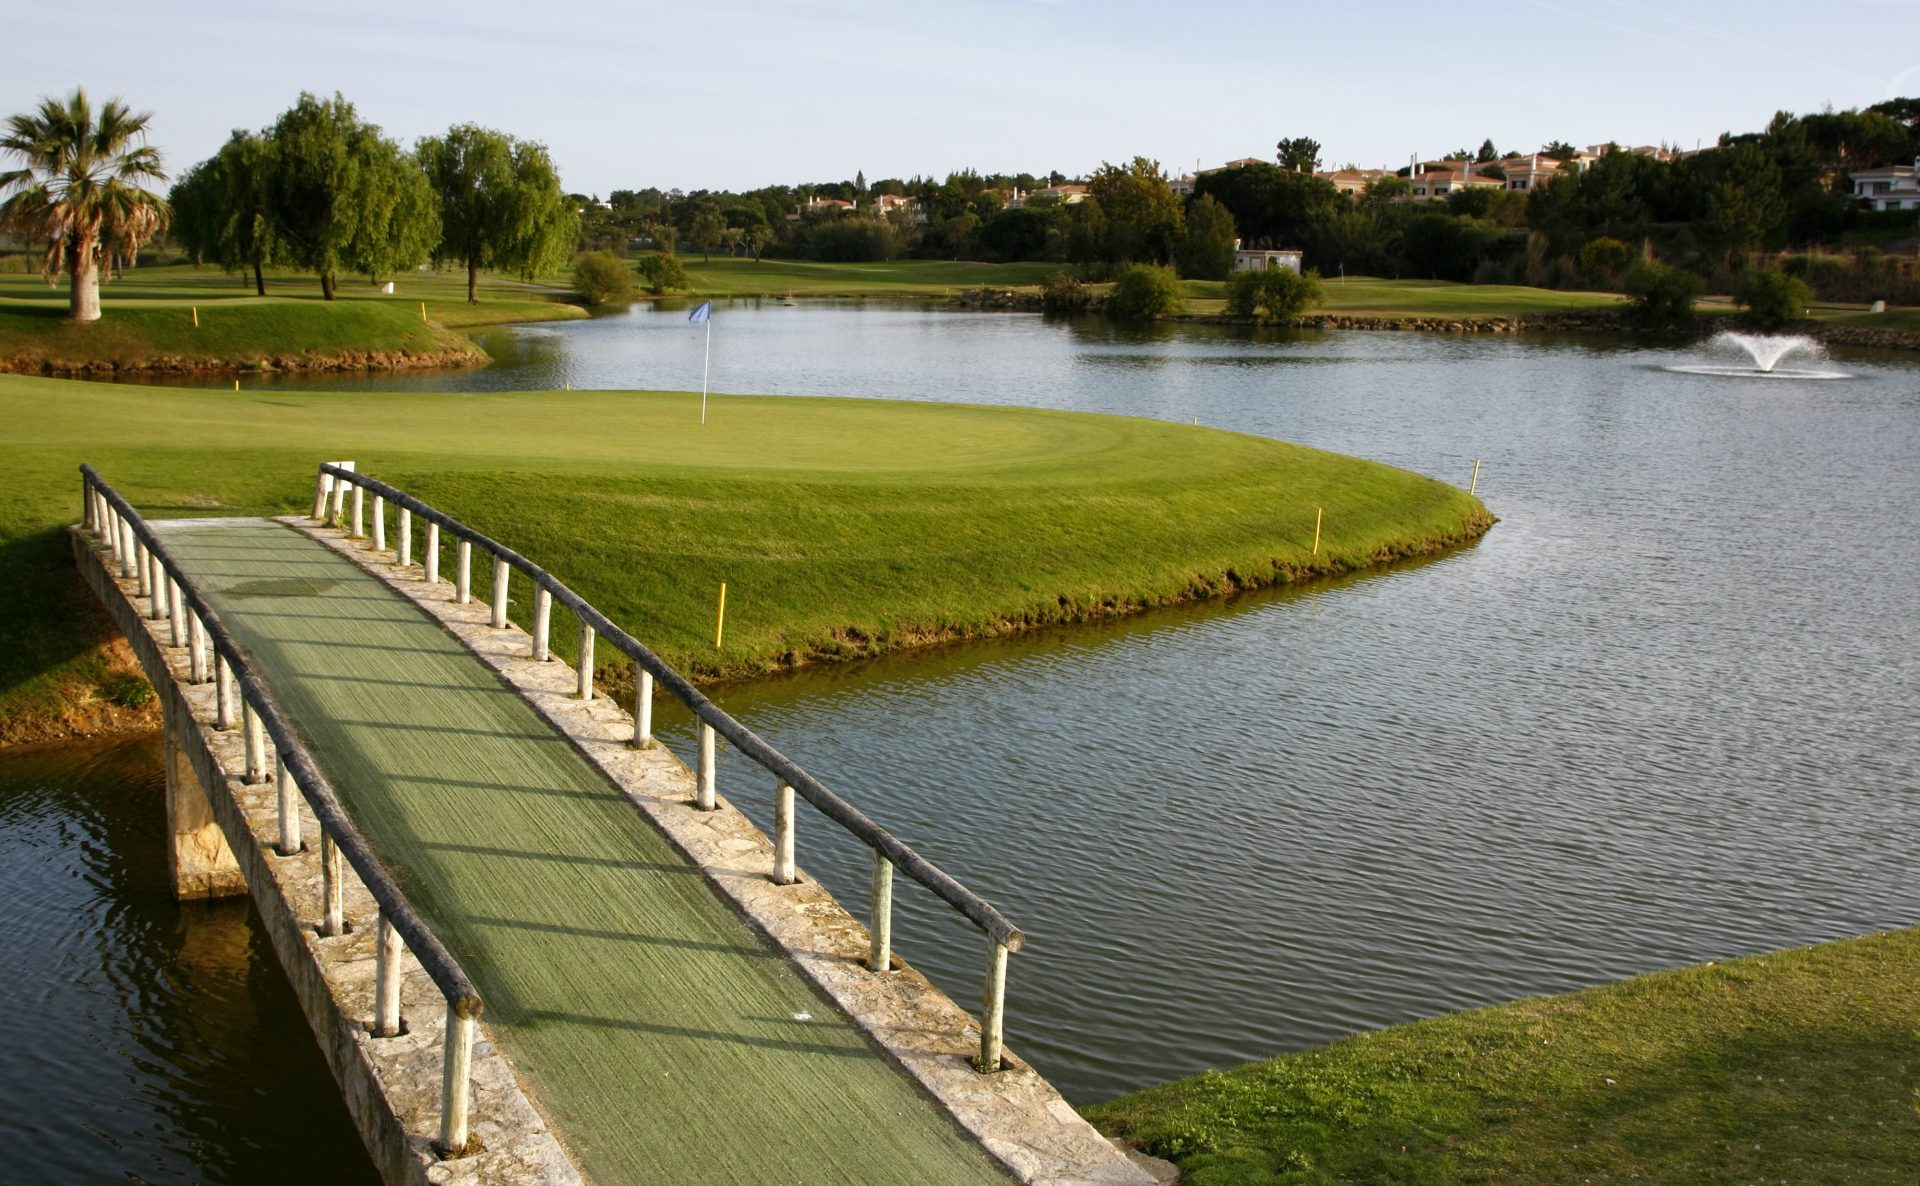 The Algarve celebrates 50 years of golf